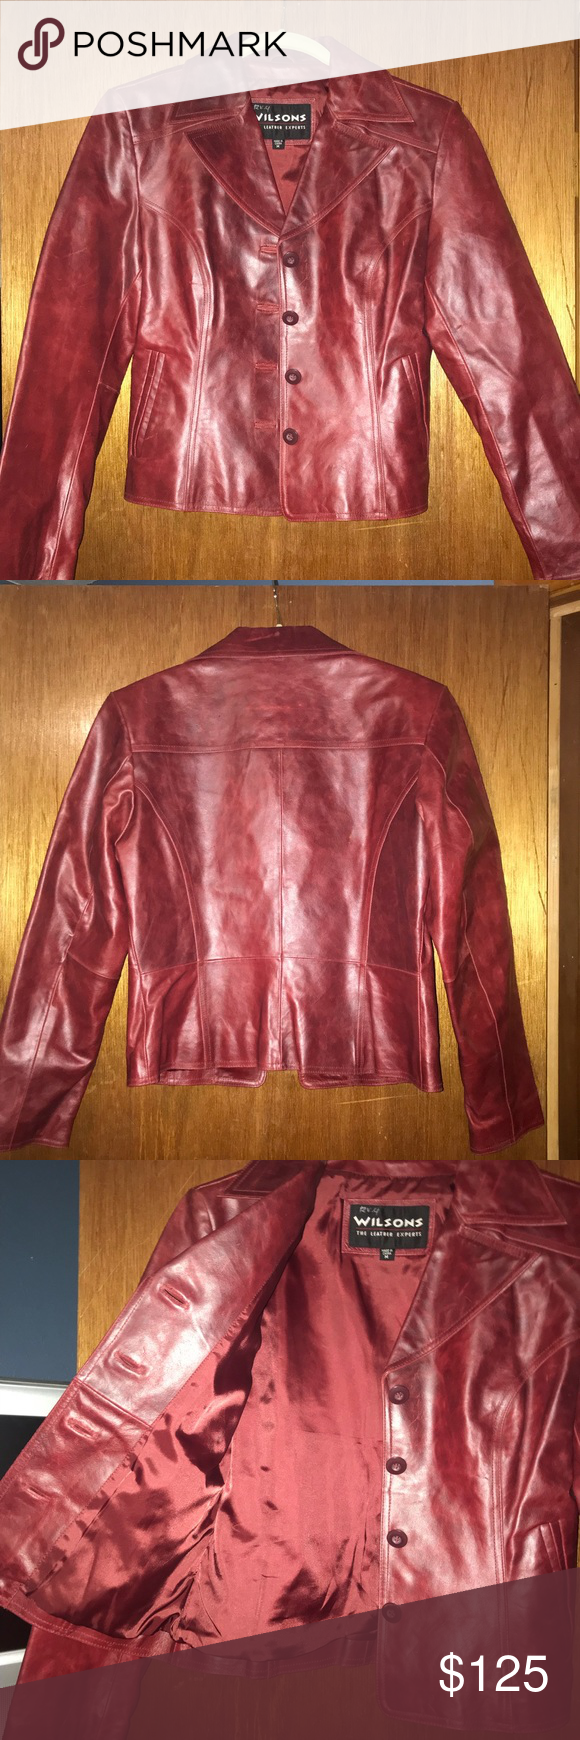 Wilson's leather jacket Leather jacket, Jackets, Wilsons